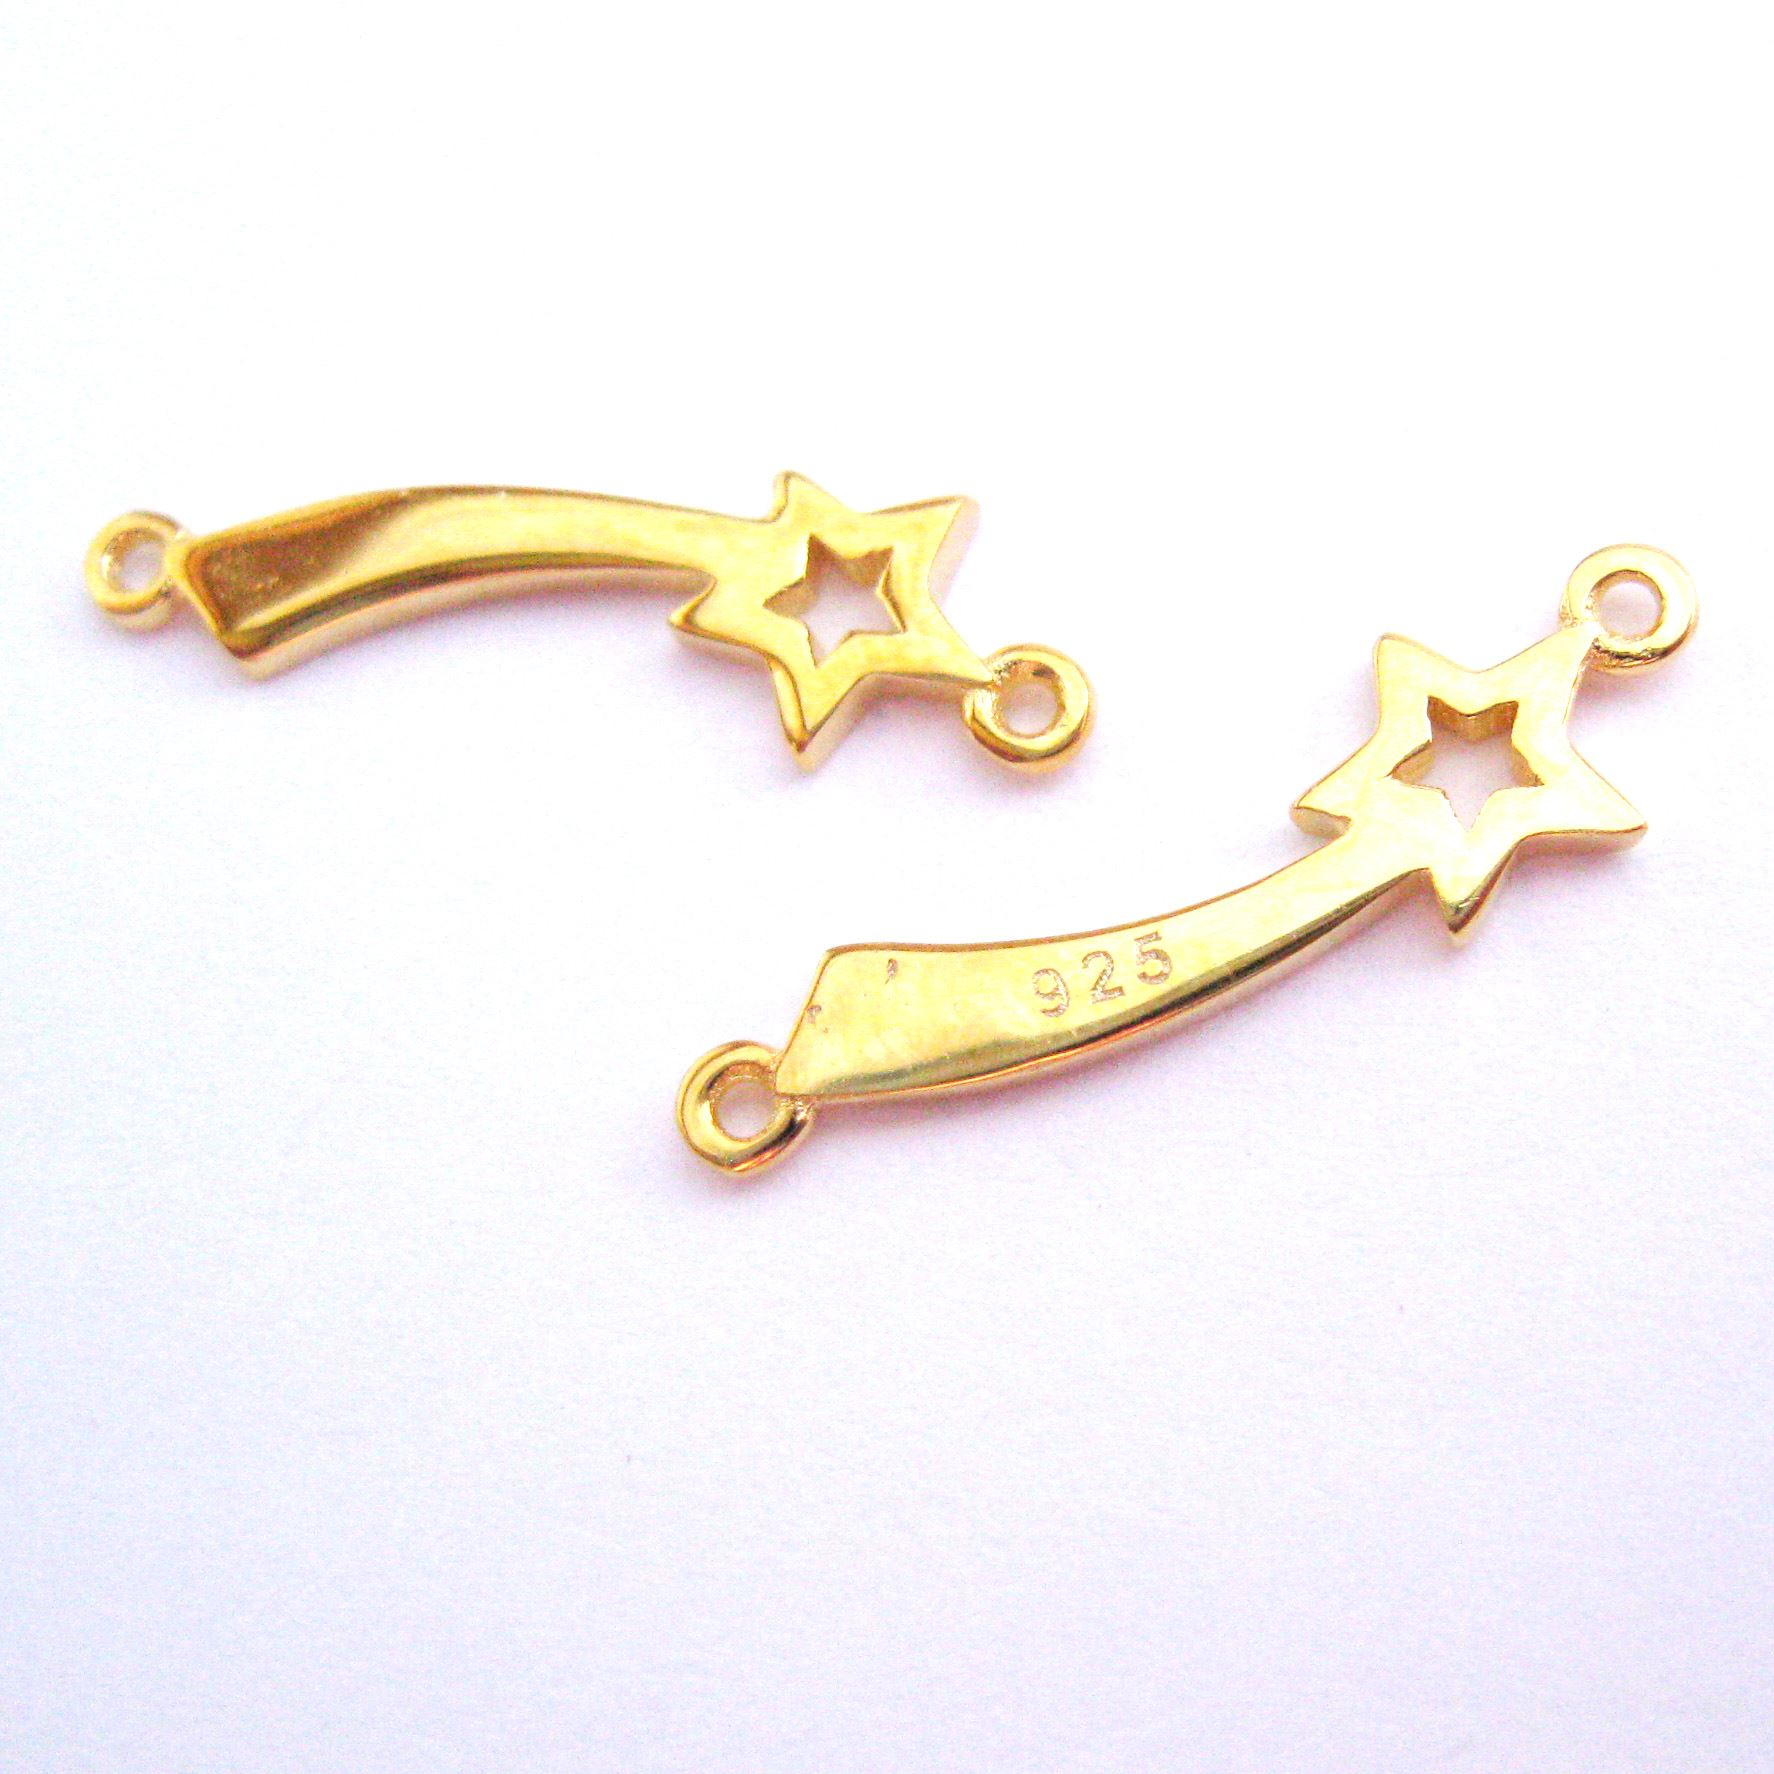 22K Gold plated Sterling Silver Shooting Star Connector Pendant - Shooting Star Charm -18.5mm (1 pc)